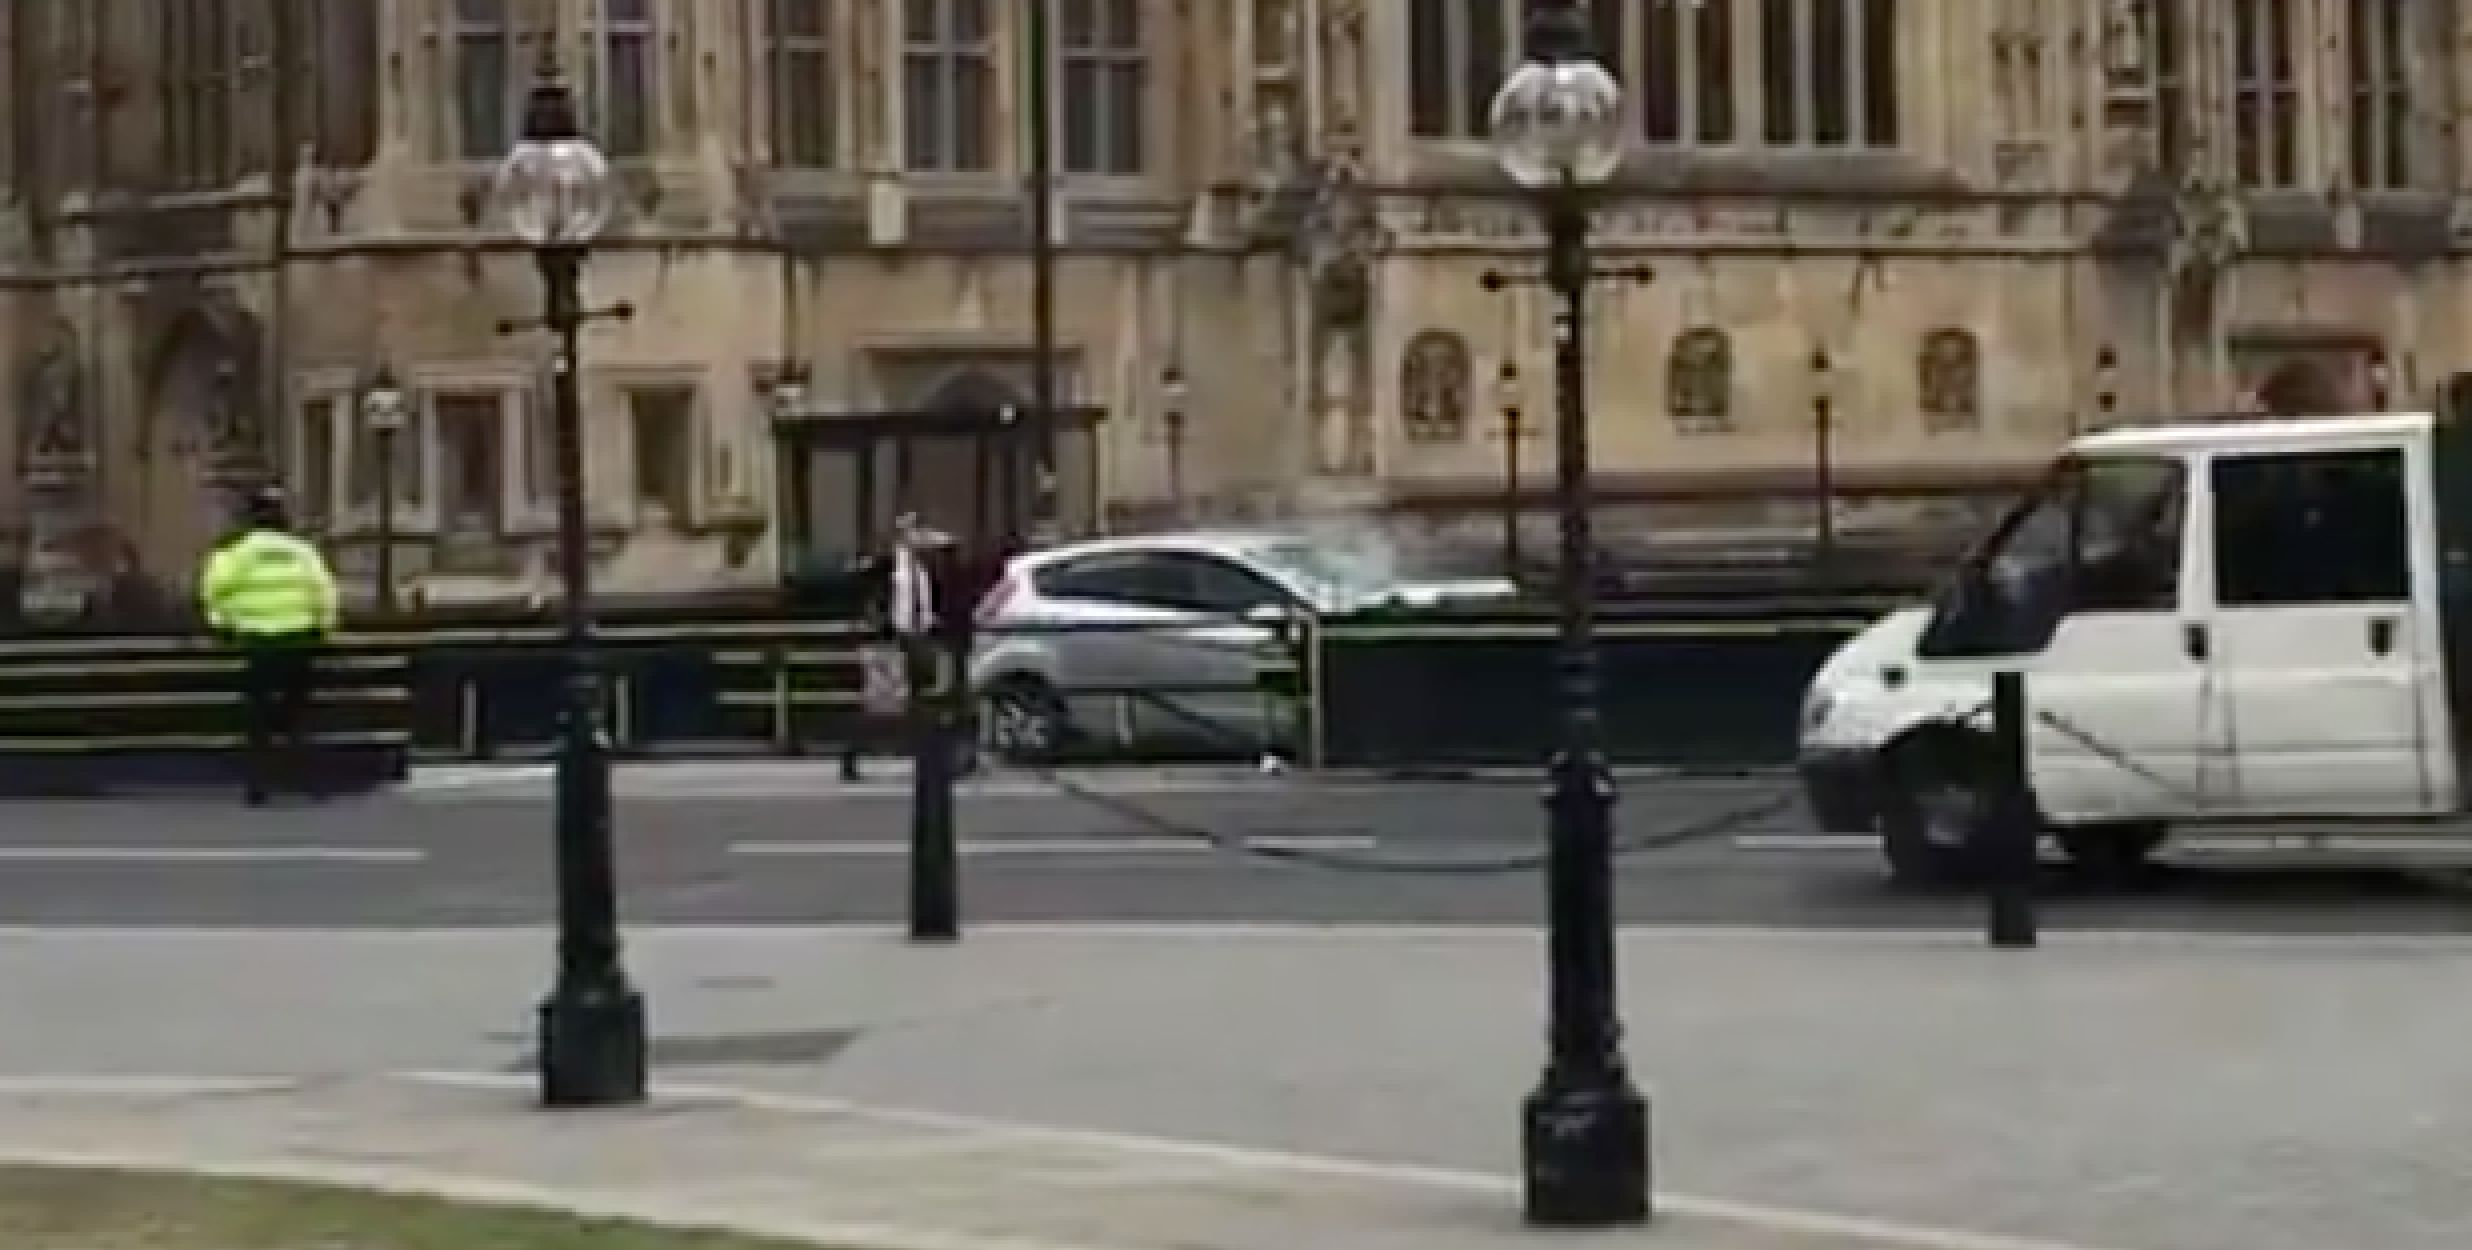 Horrifying Moment Driver Ploughs Car Into Pedestrians Outside UK Parliament